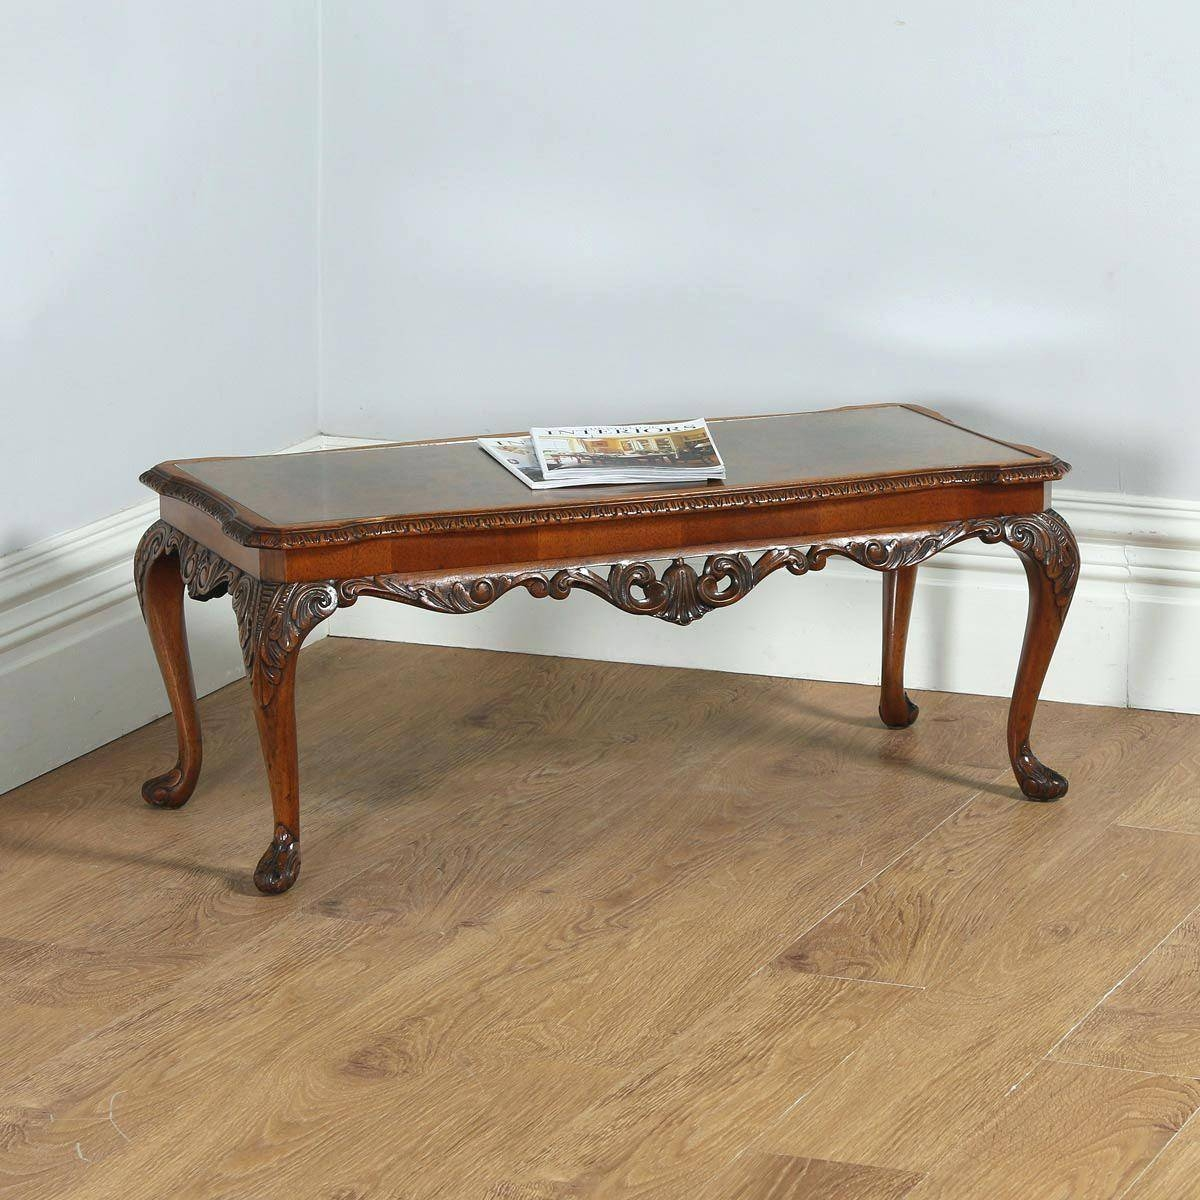 Coffee Table ~ 18Th Century Antique Reproduction Coffee Tables regarding Campaign Coffee Tables (Image 8 of 30)